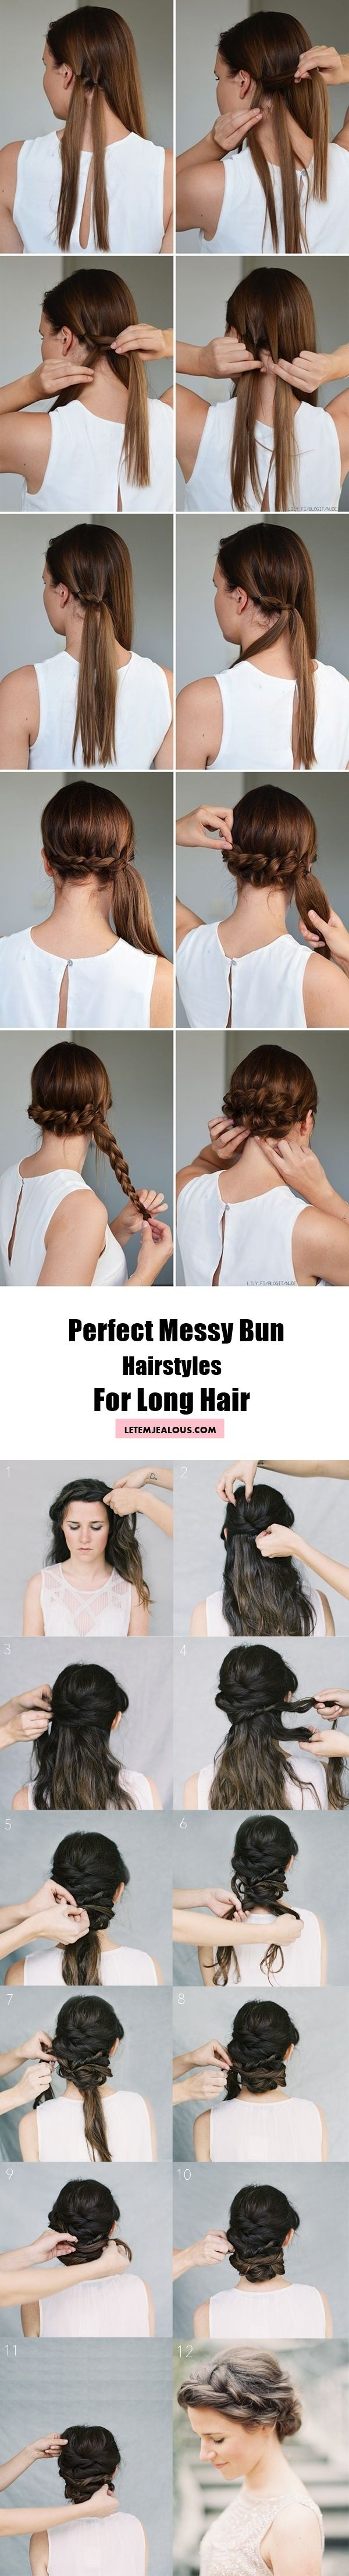 30 Perfect Messy Bun Hairstyles for Long Hair (With Tutorial)